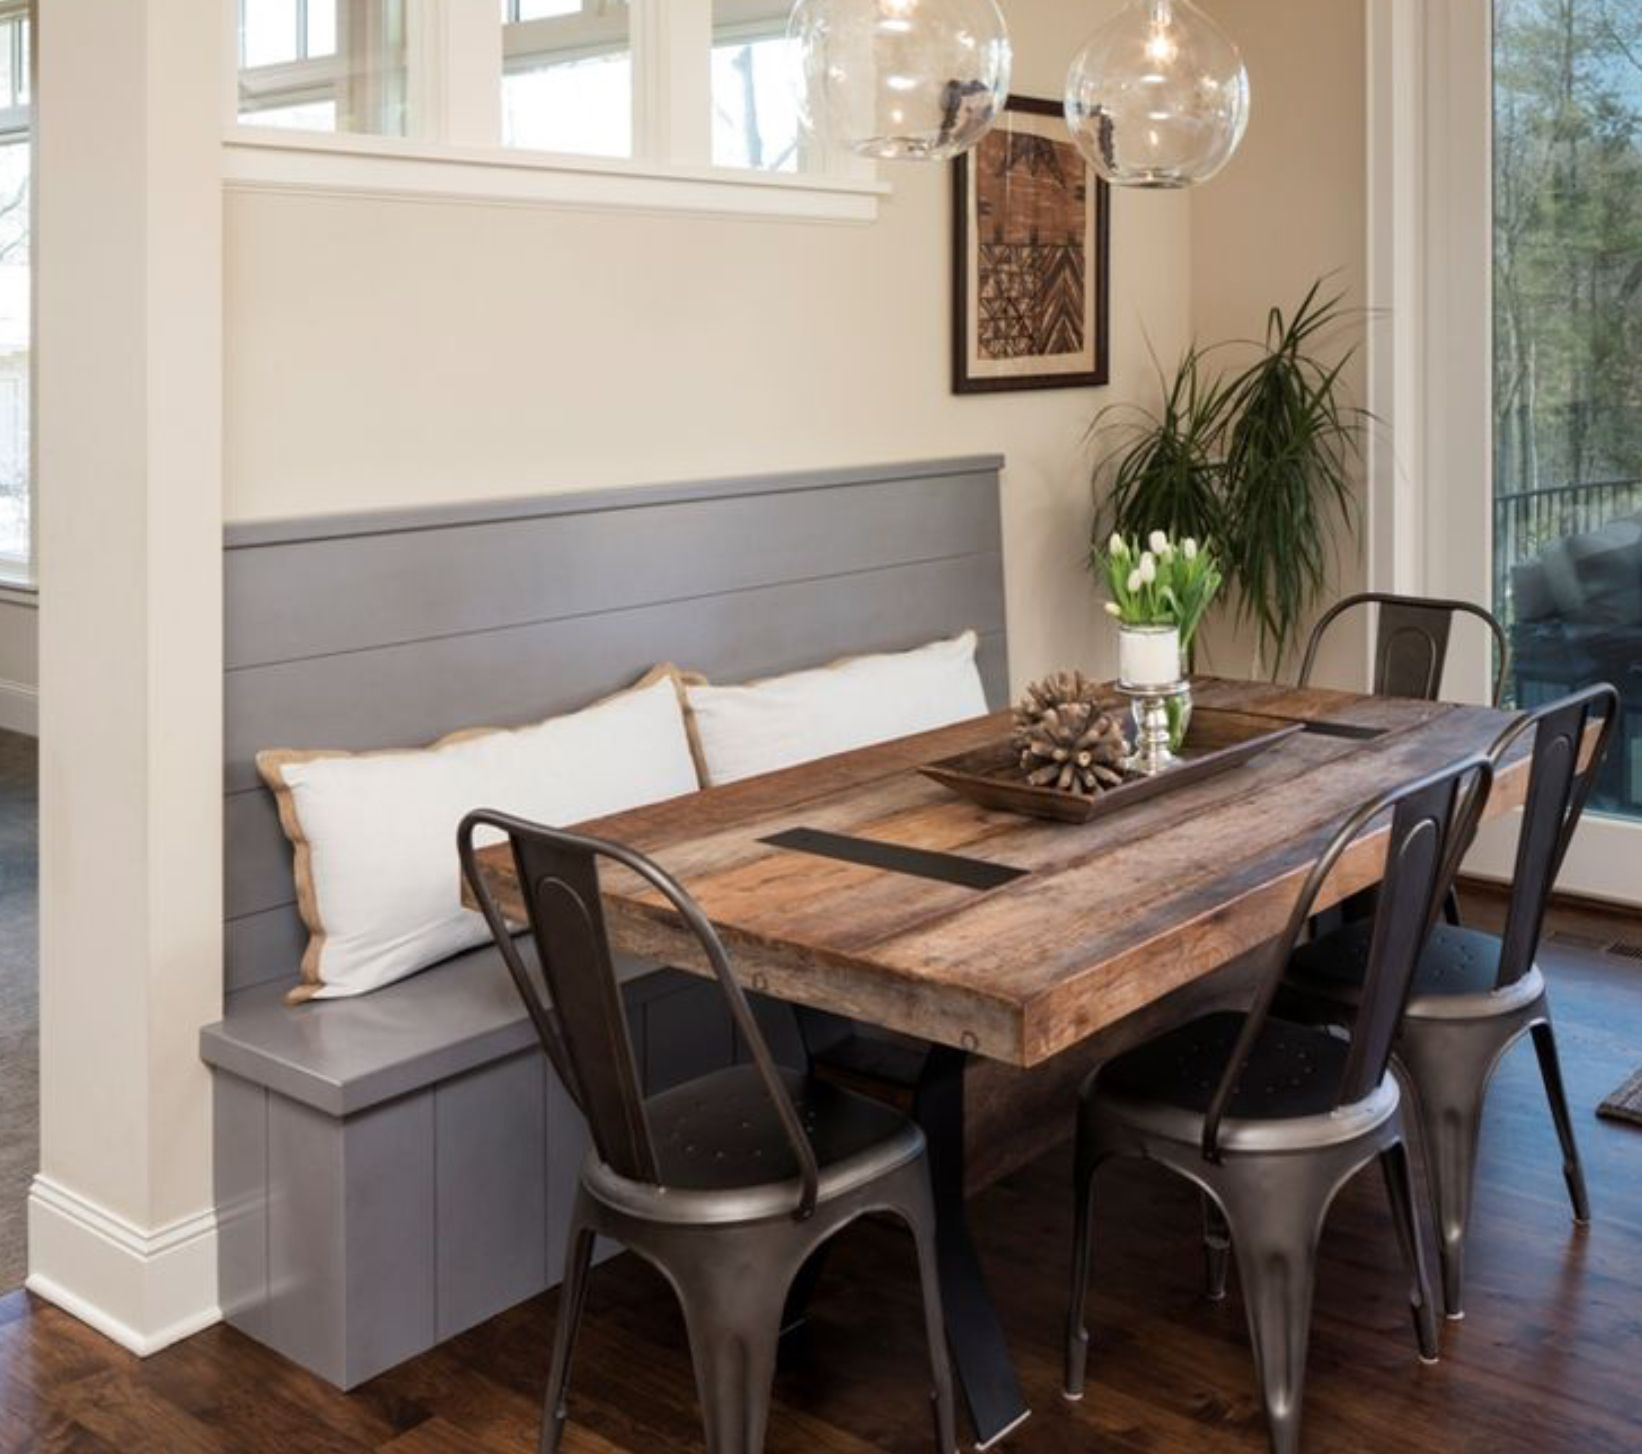 Cool Pin By Emily Truax On Kitchen 2019 In 2019 Dining Nook Caraccident5 Cool Chair Designs And Ideas Caraccident5Info